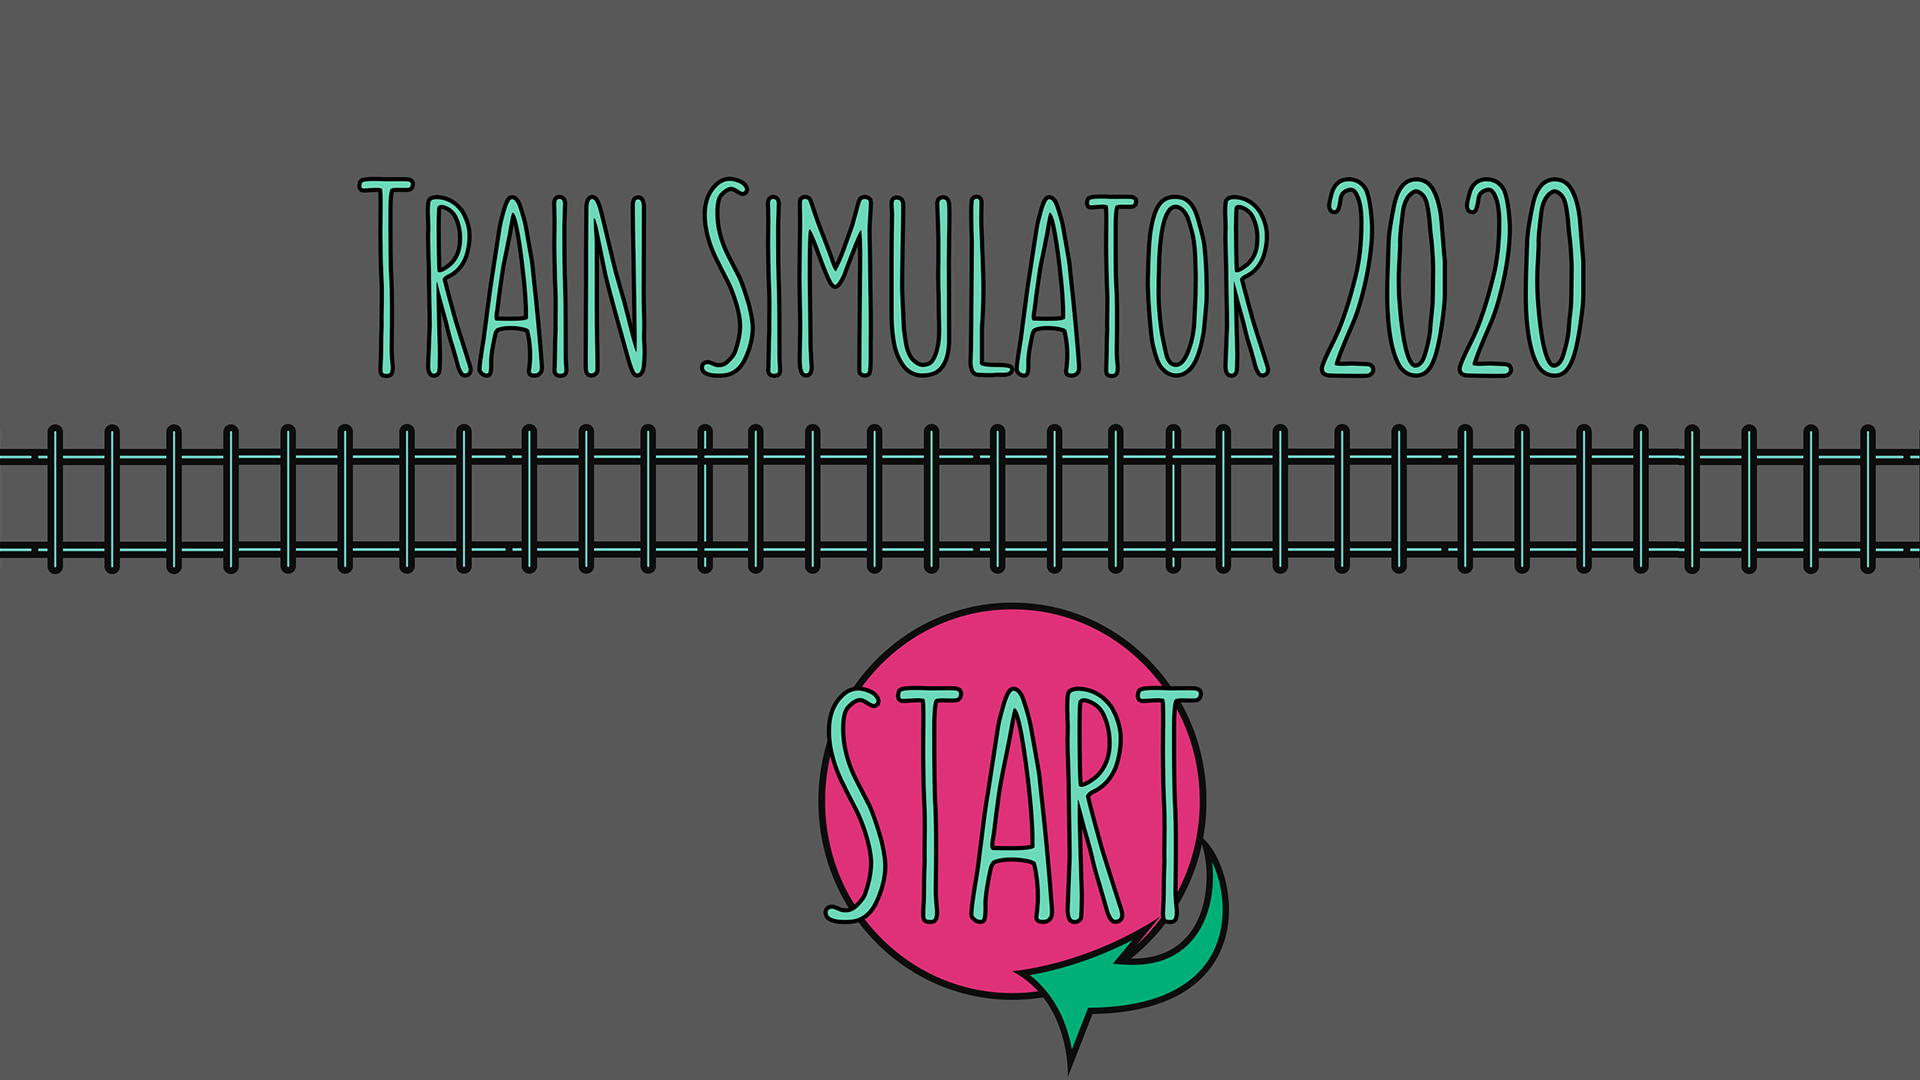 Train Simulator 2020 by teamawesome